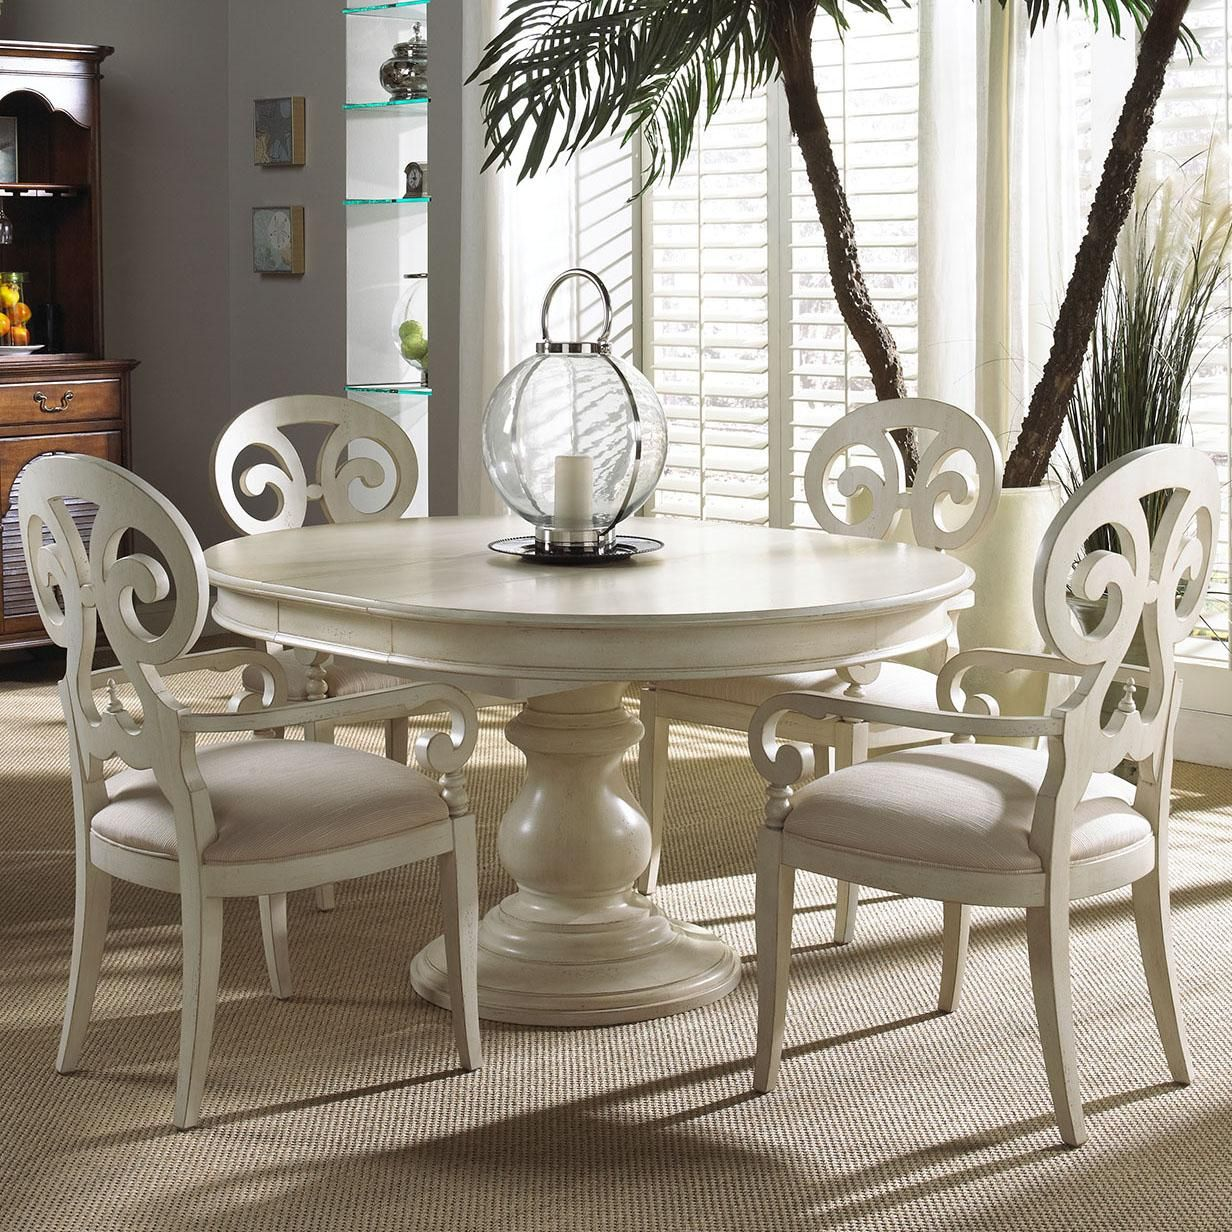 Summer Home 5 Piece Set By Fine Furniture Design Round Dining Room Sets Round Dining Room Round Pedestal Dining Table